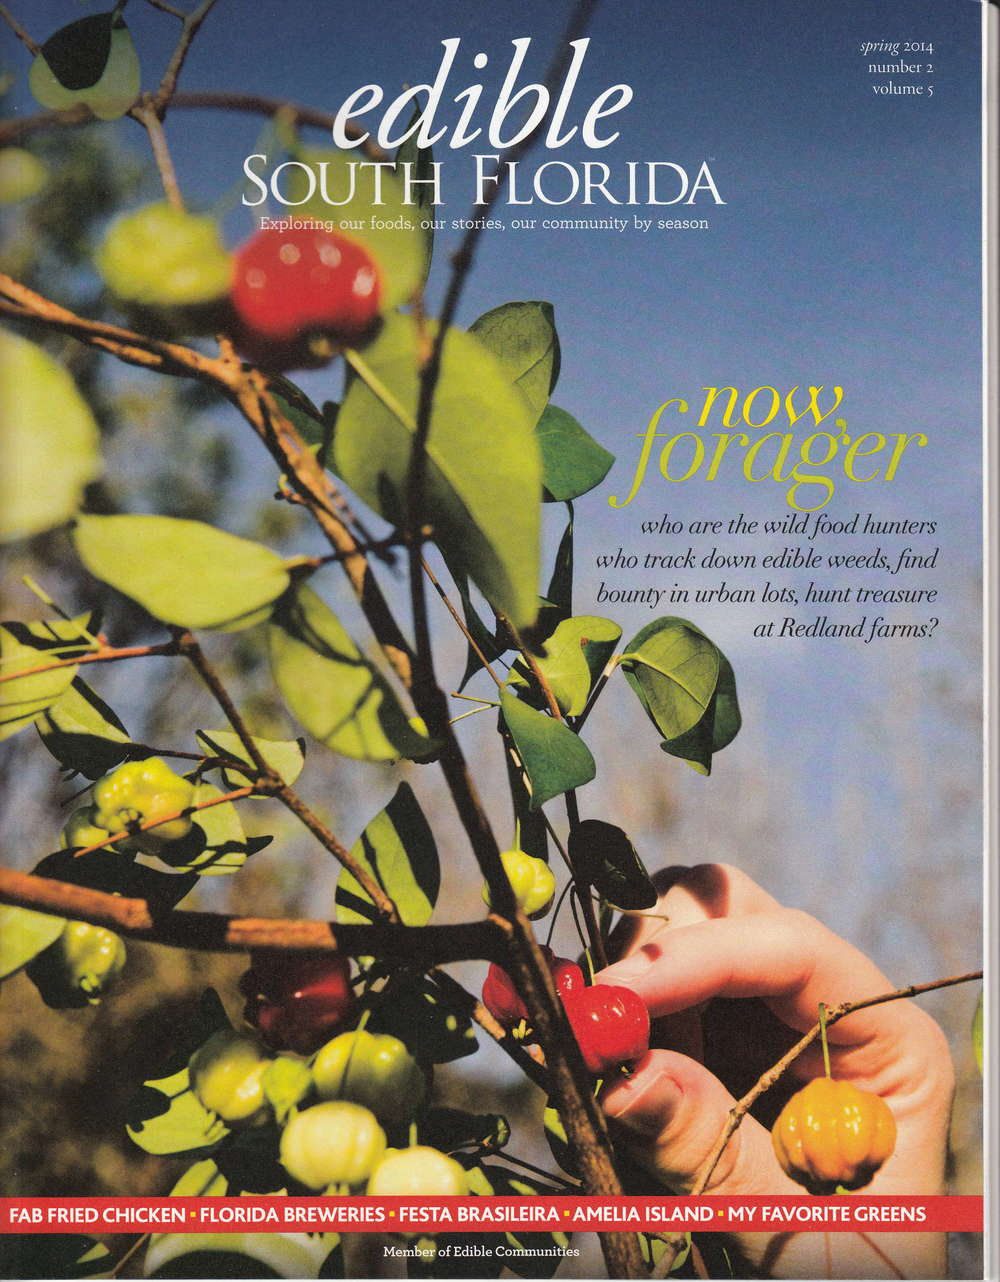 Edible South Florida Forager_Page_1.jpg